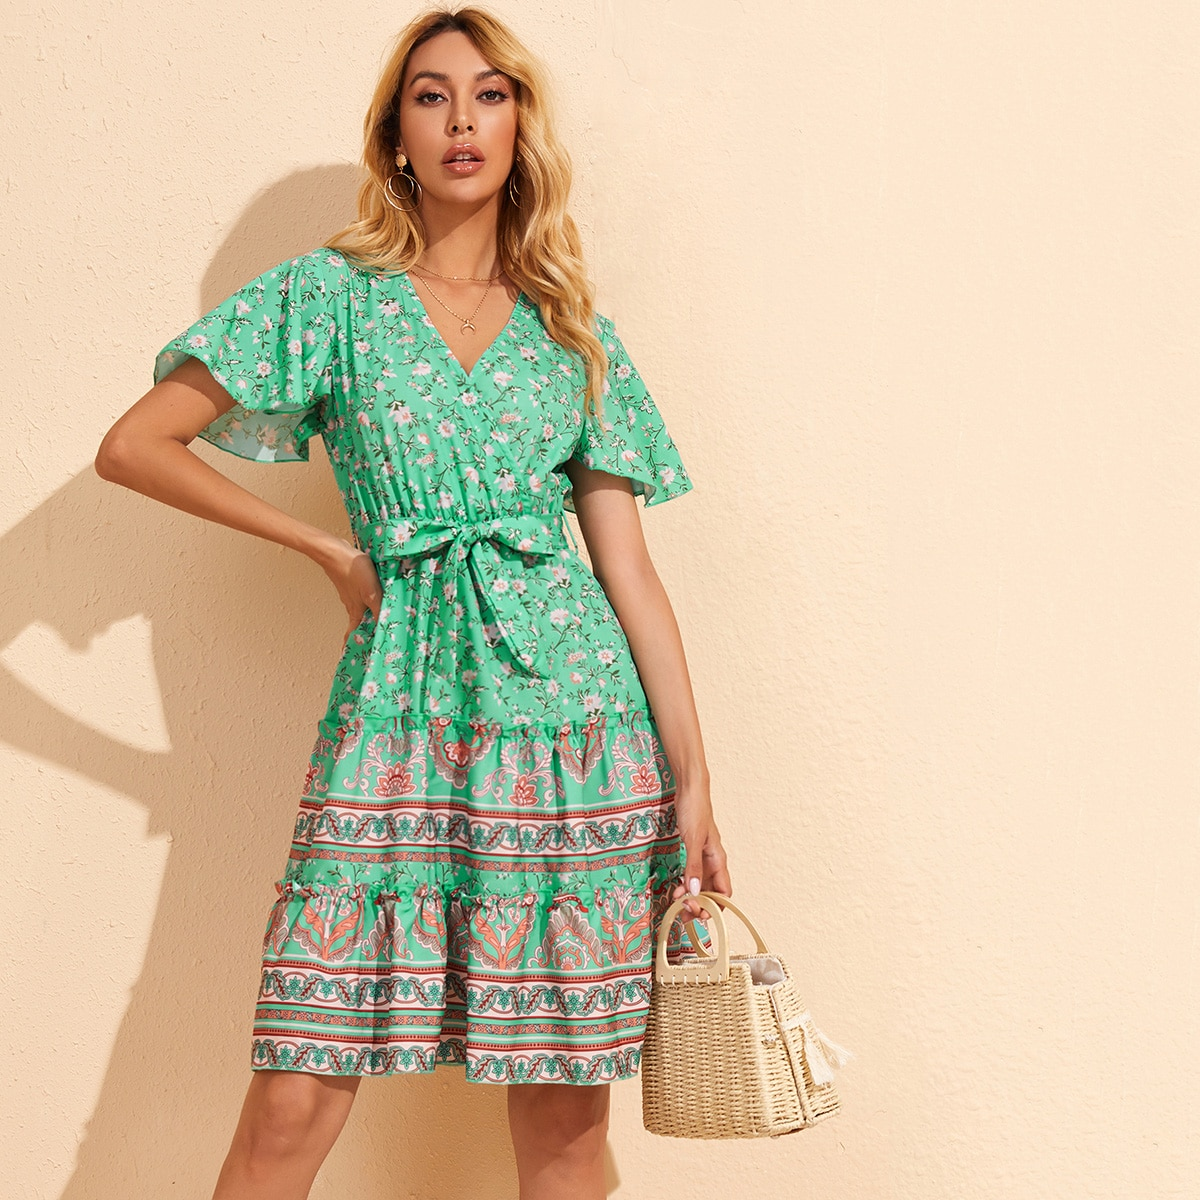 SHEIN / Surplice Neck Floral & Tribal Print Belted Dress